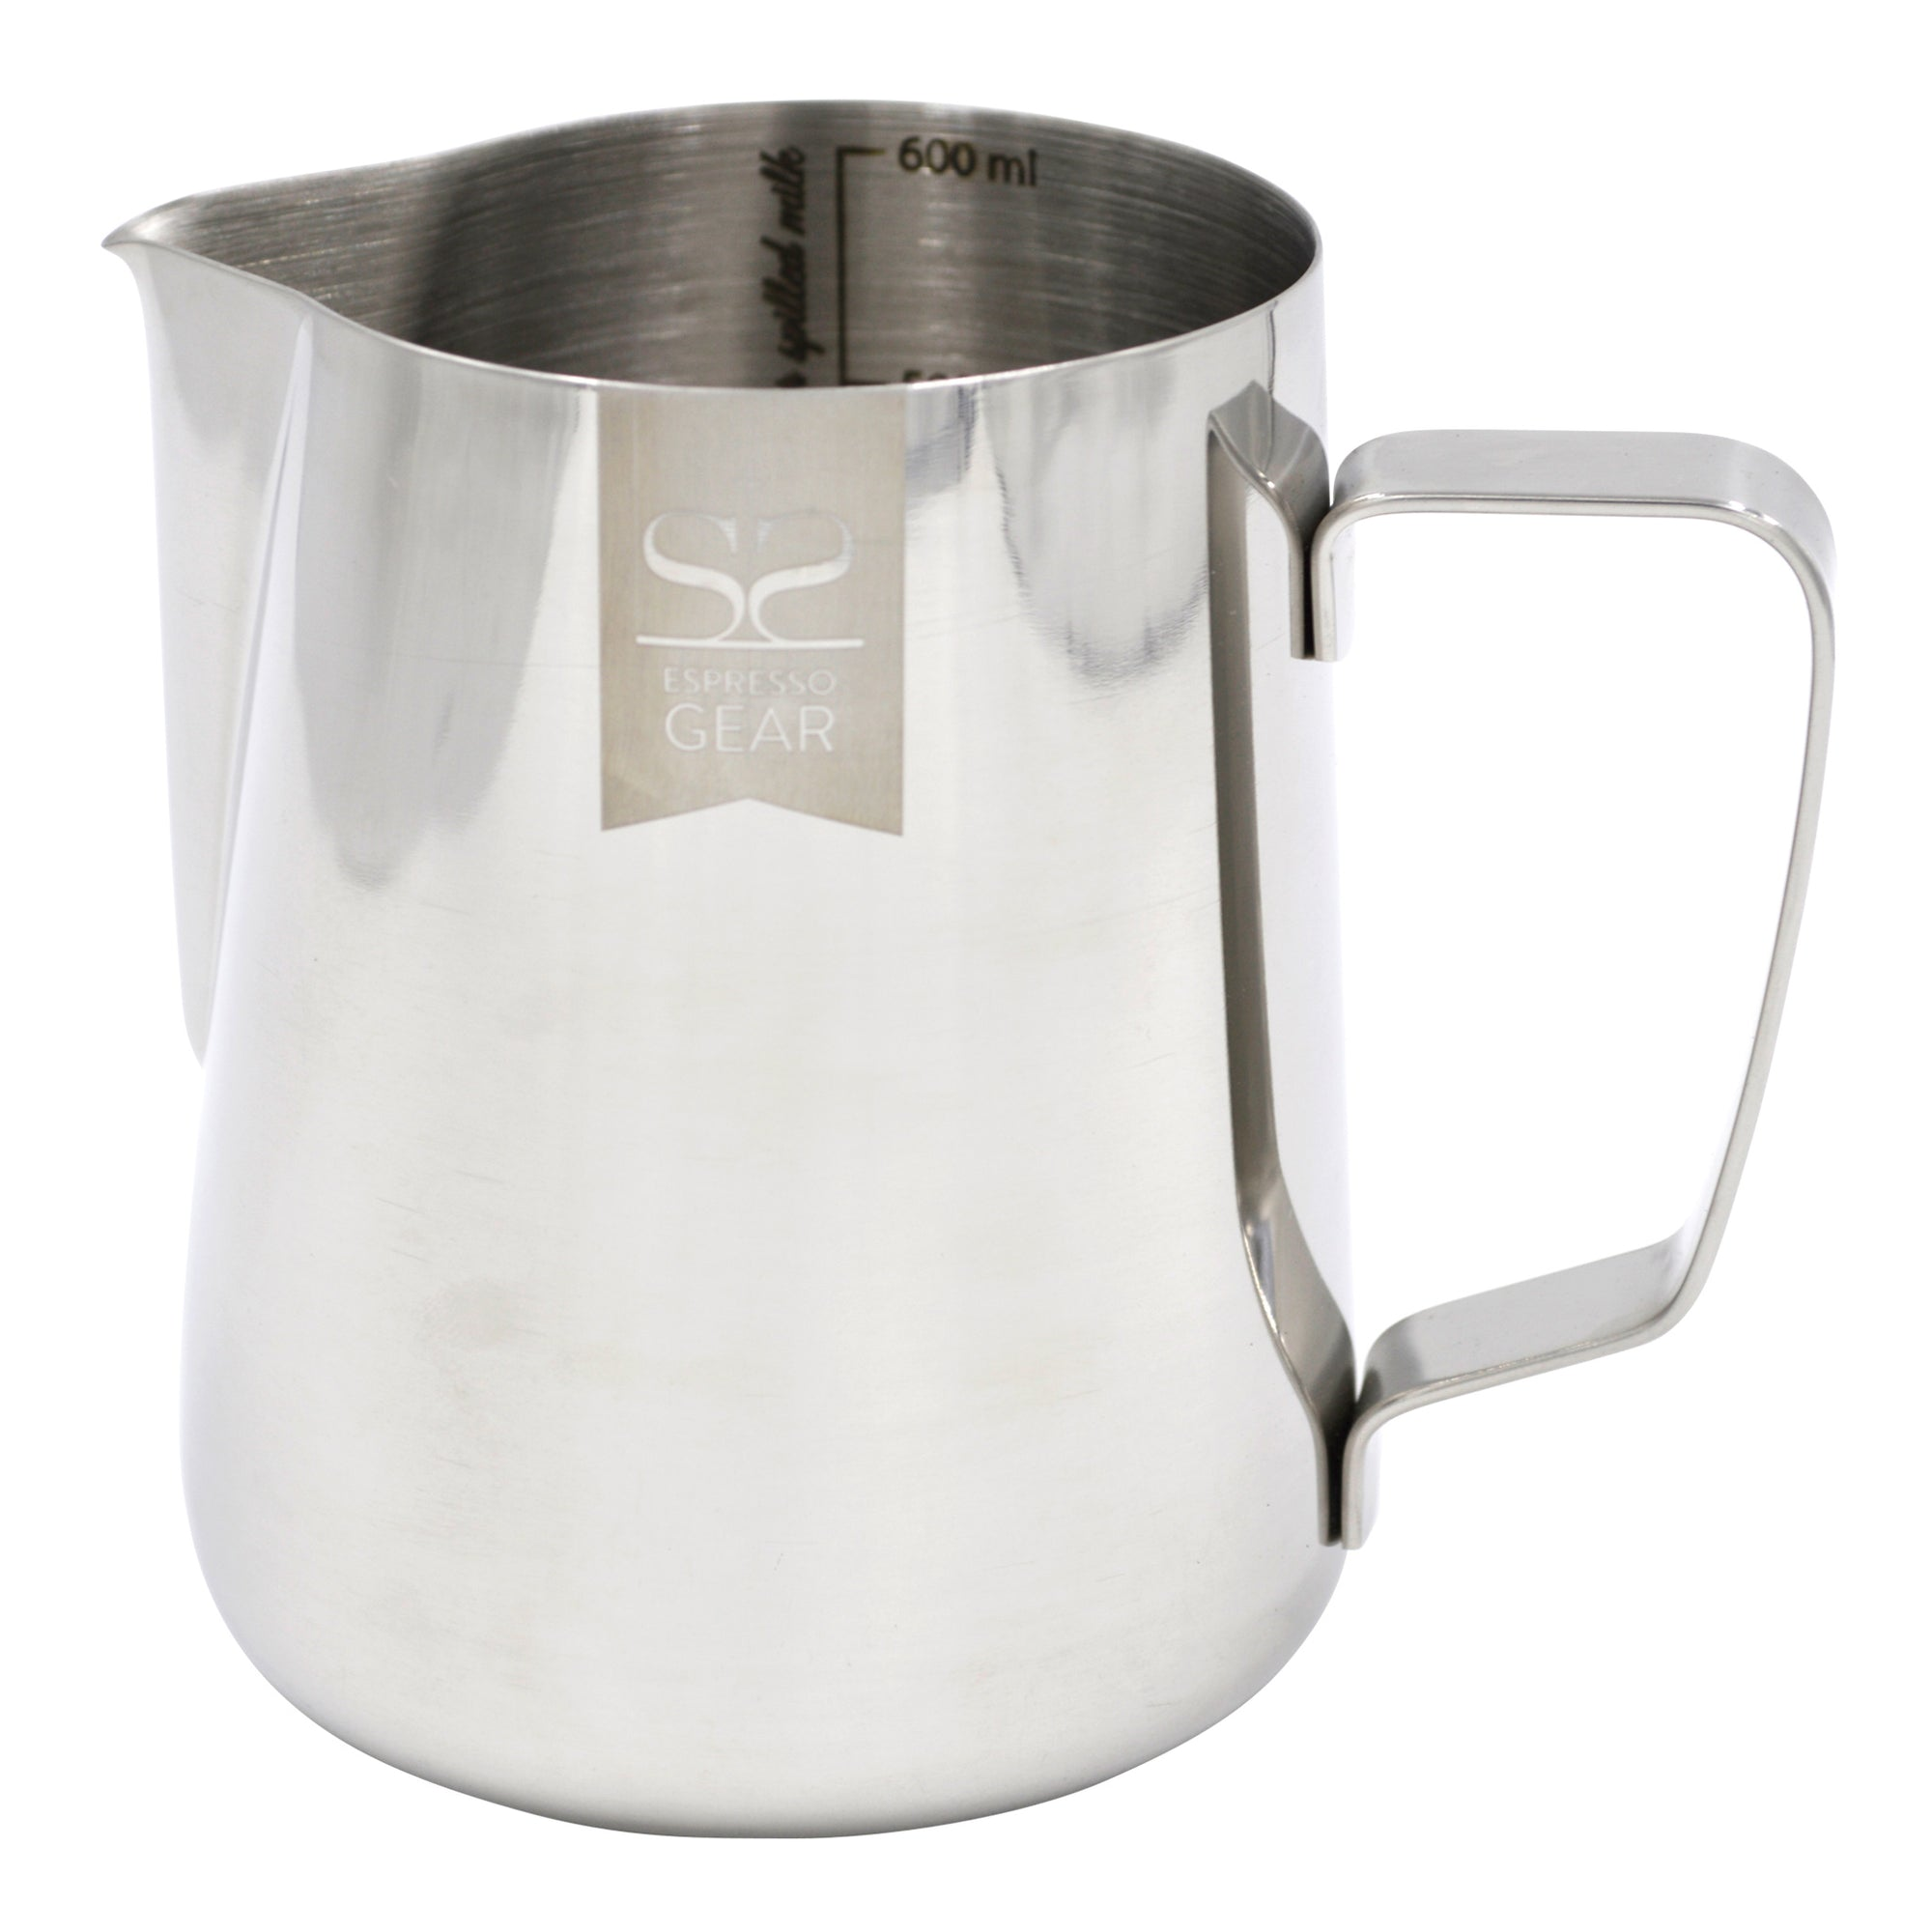 Pitcher Classic 1,5L w/ measuring line - Espresso Gear - Espresso Gear